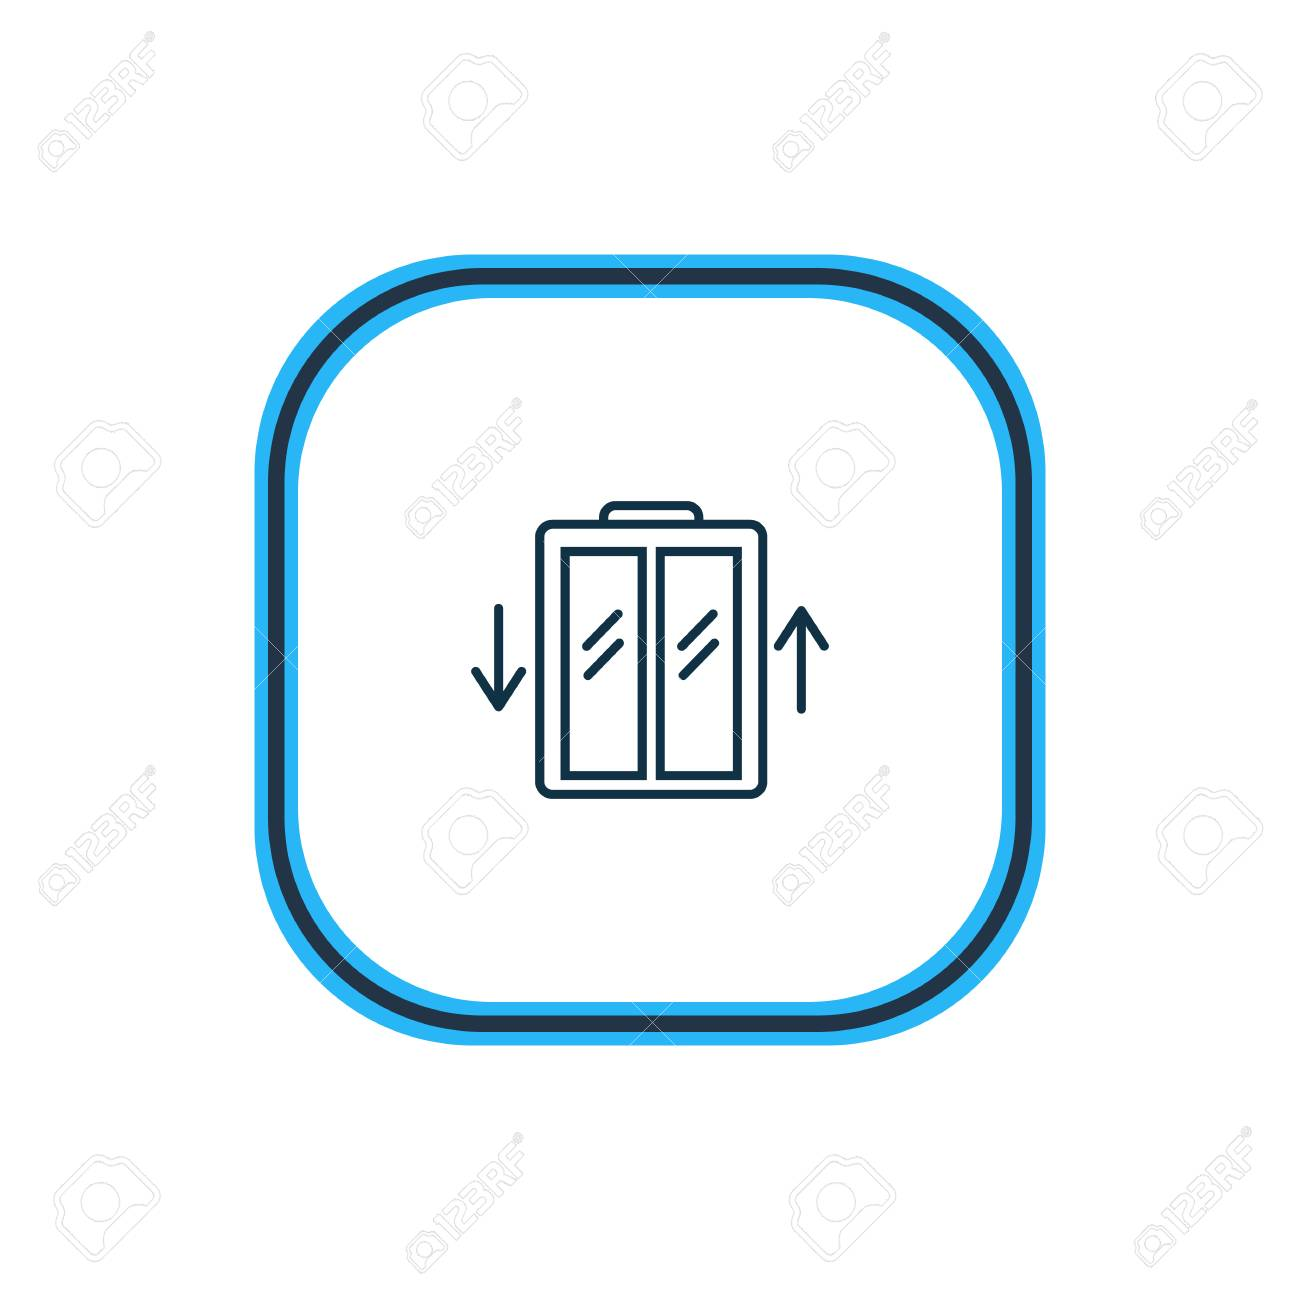 Vector illustration of elevator icon line. Beautiful hotel element also can be used as lift icon element. - 111635933